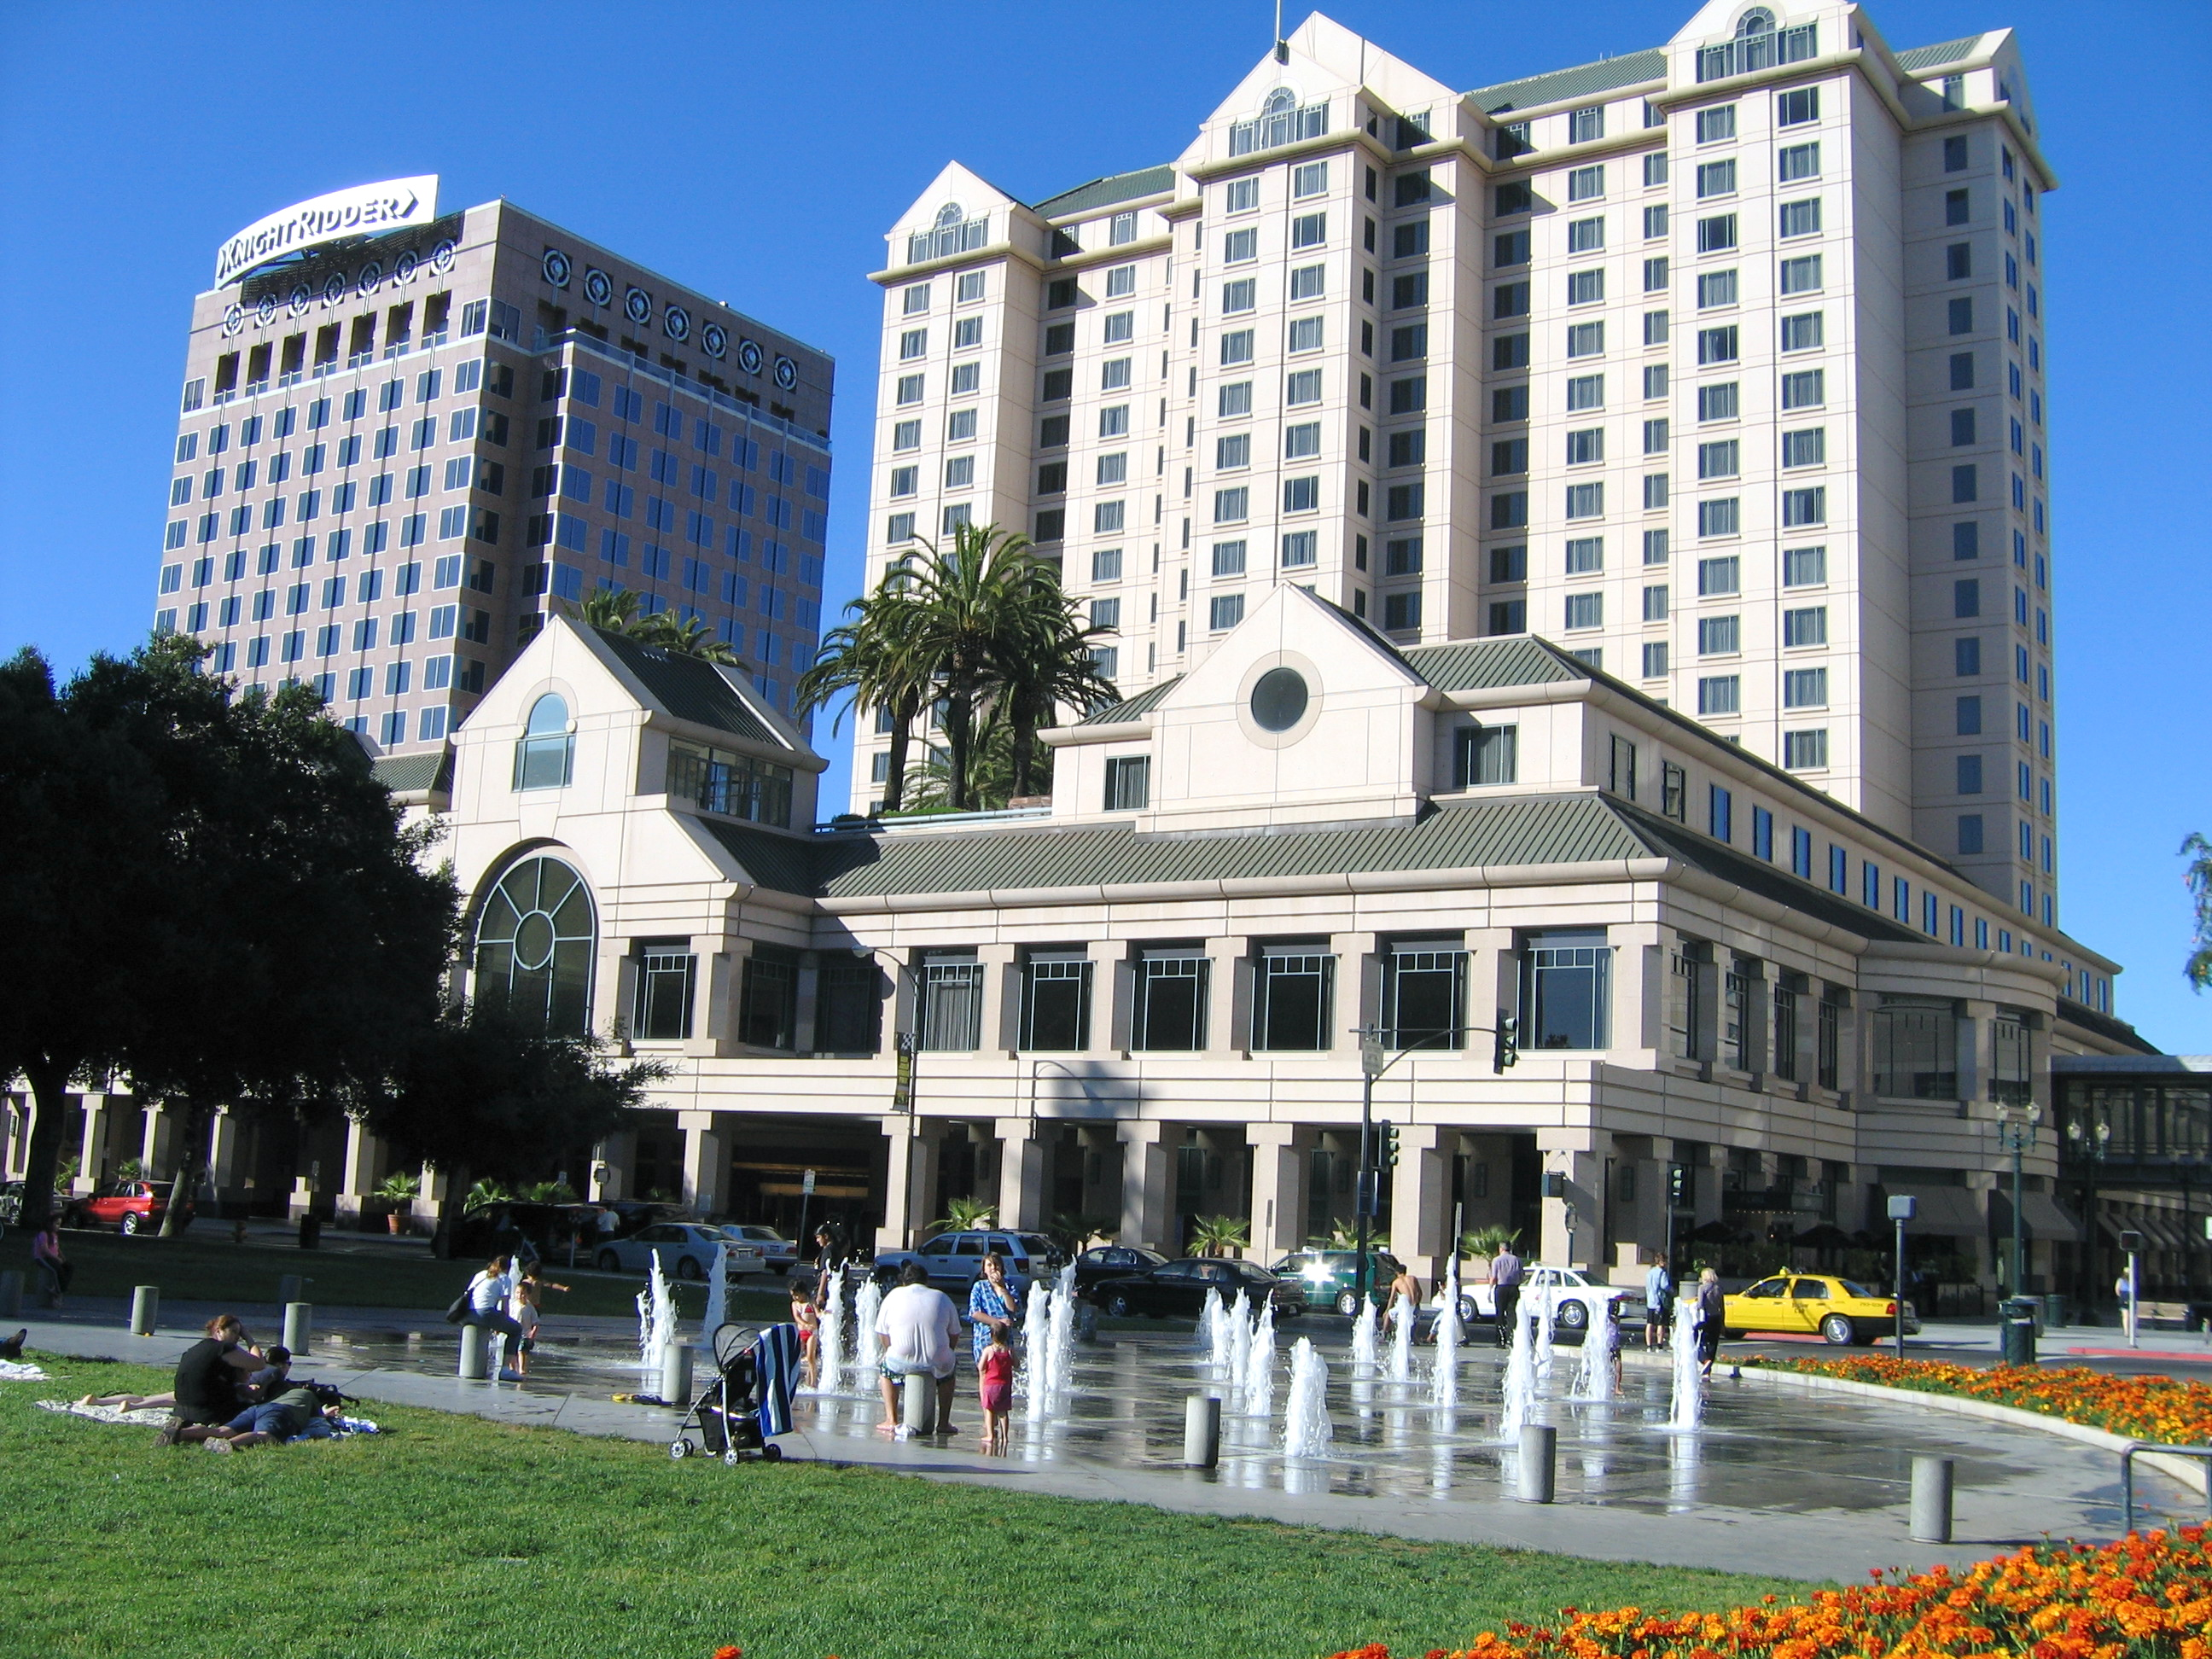 File The Fairmont Hotel In San Jose Jpg Wikimedia Commons